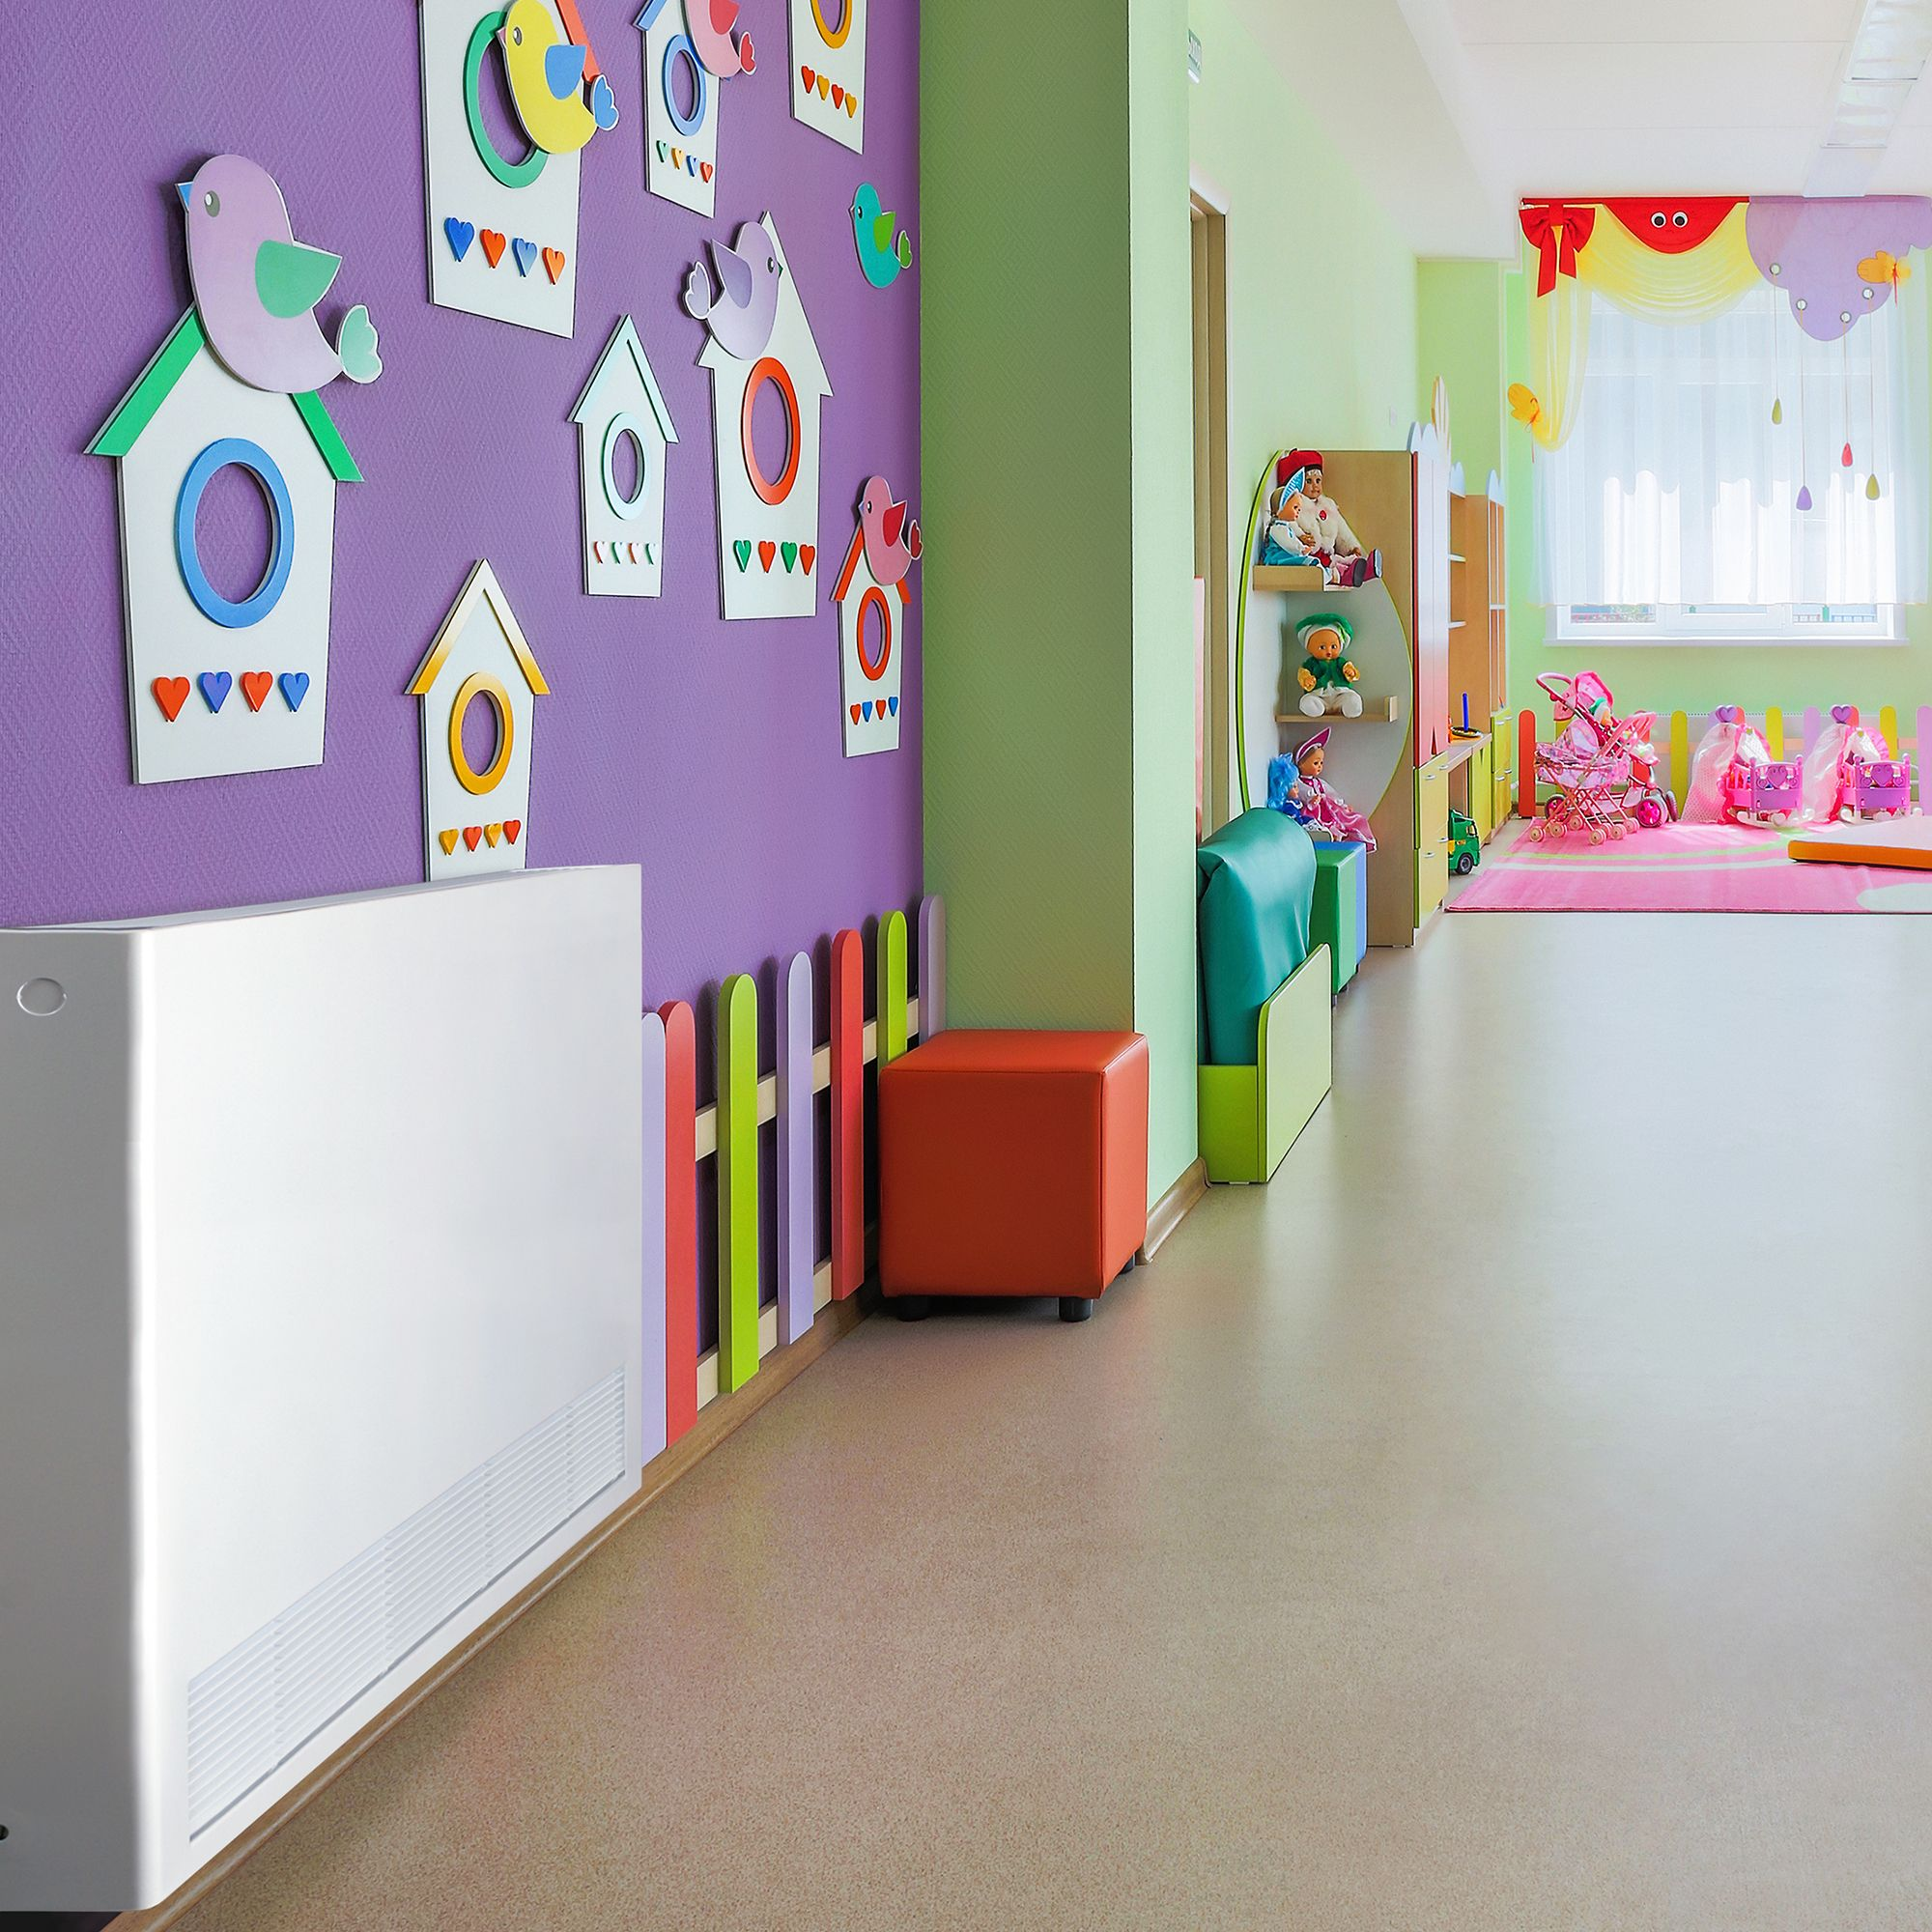 Barlo Low Surface Temperature Radiator Type 21 Low